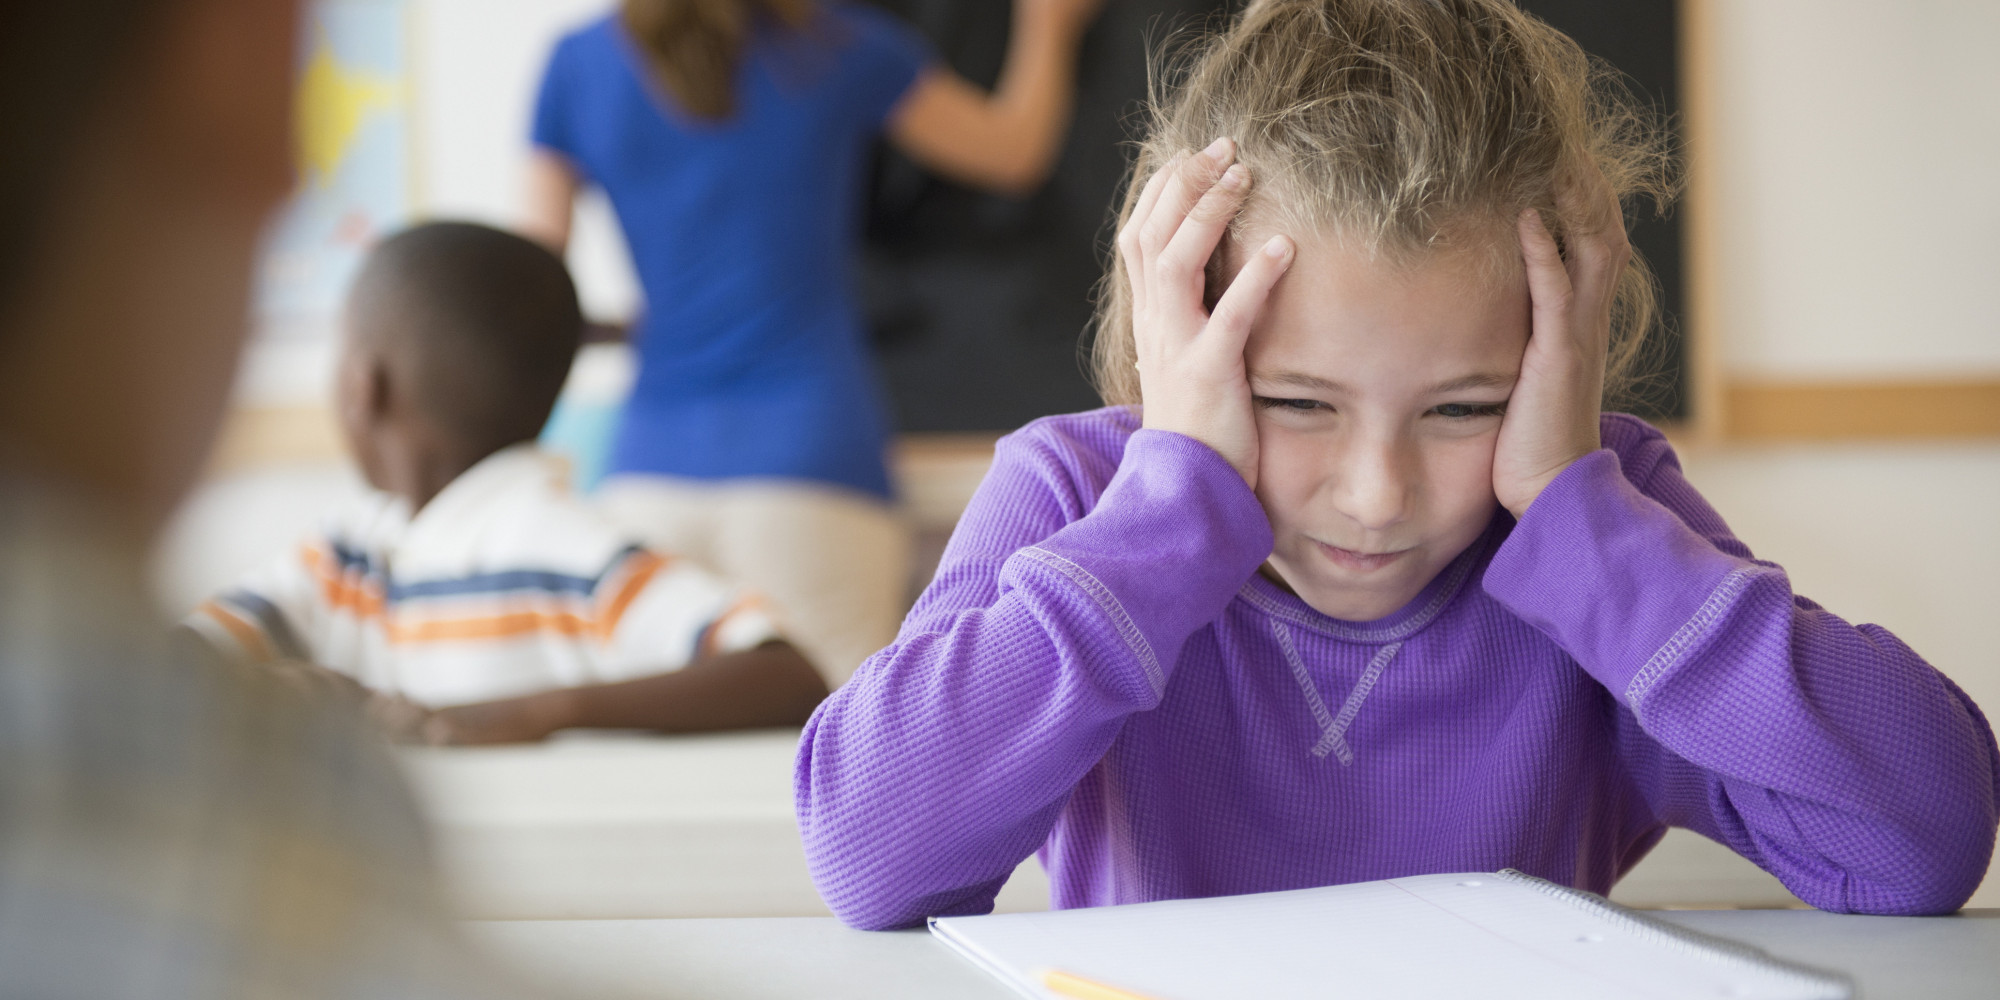 behavioural therapy for children with autism